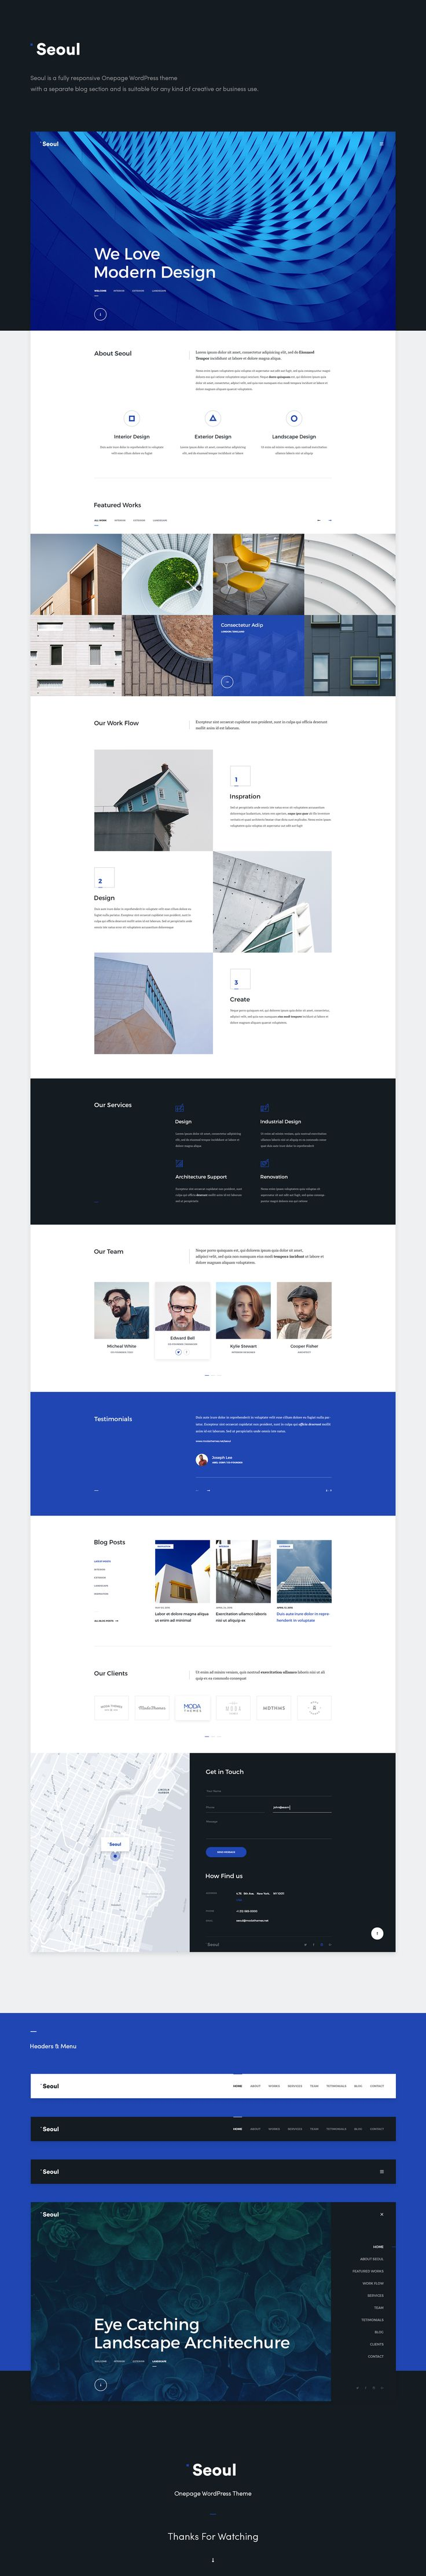 Seoul is a fully responsive Onepage WordPress theme with a separate blog section and is suitable for any kind of creative or business use.